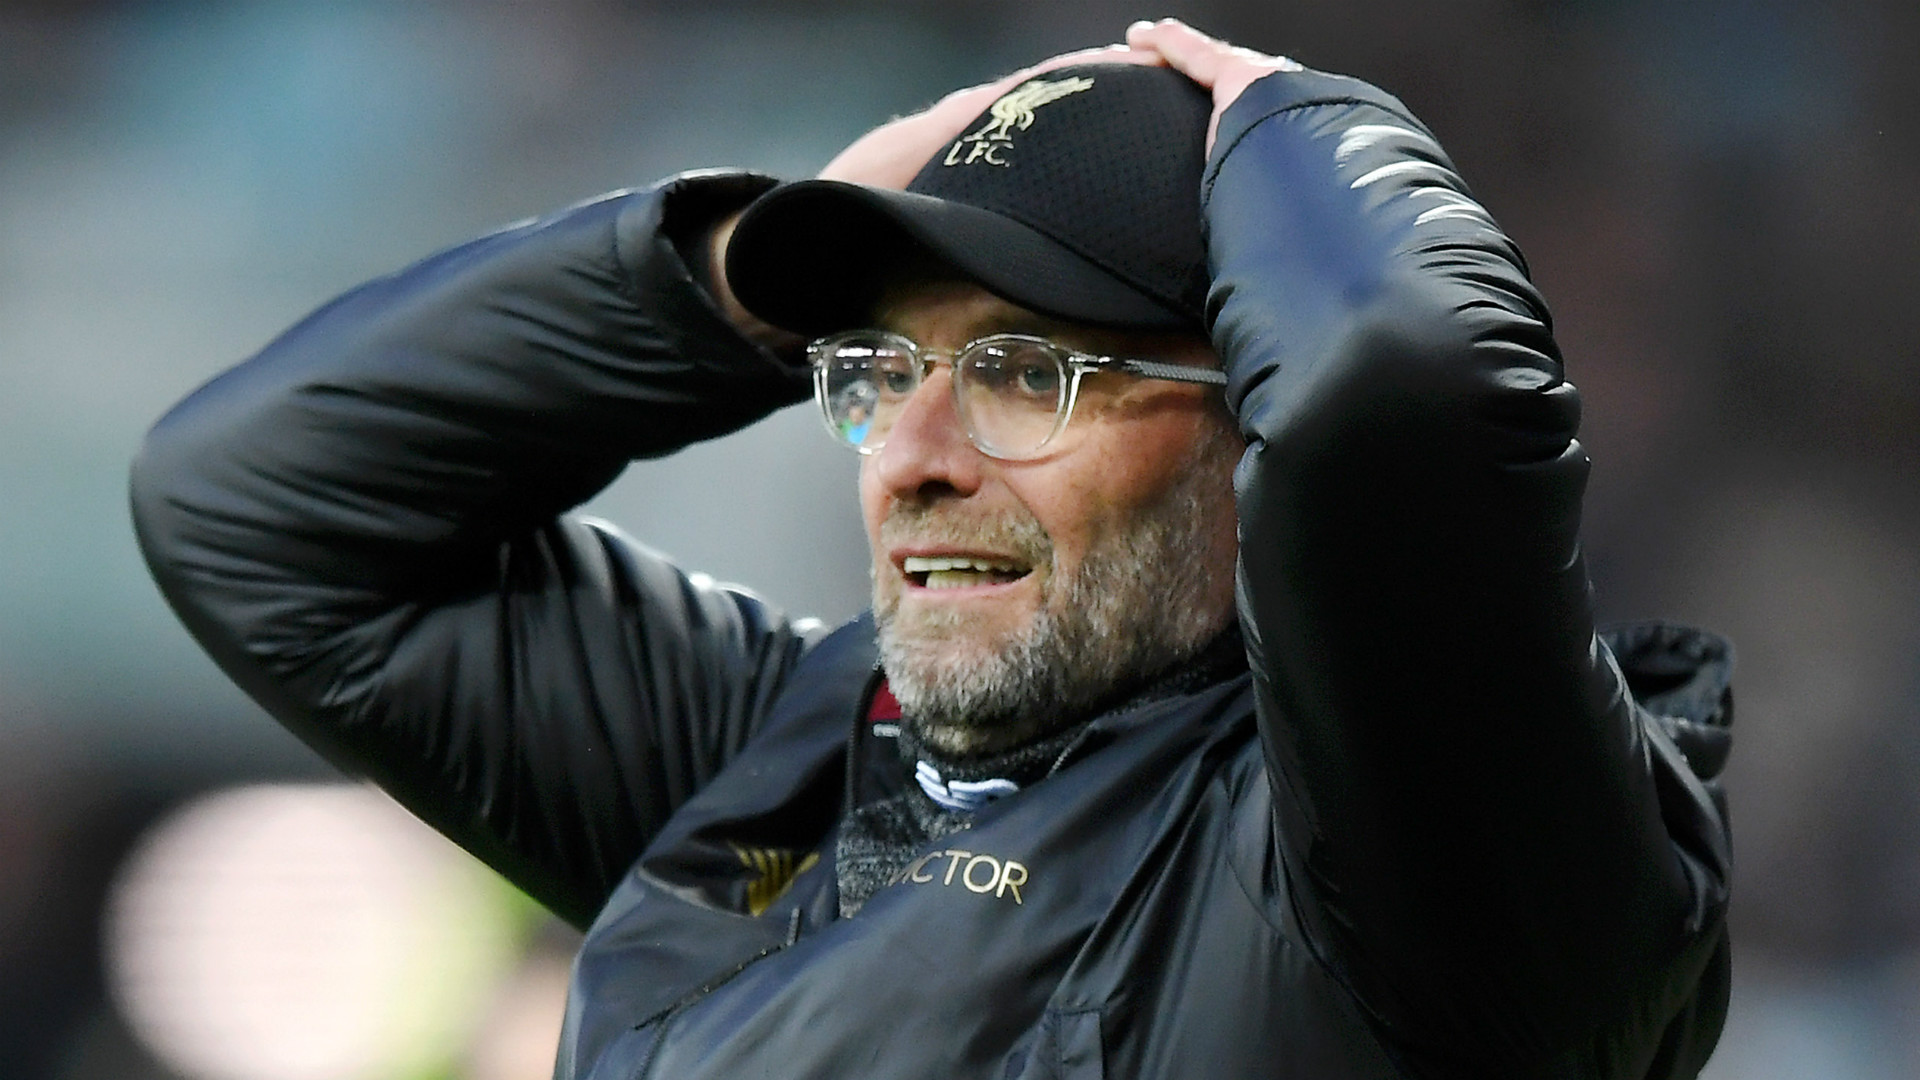 'Coming so close will help' - Liverpool legend backs Klopp's side for Premier League glory